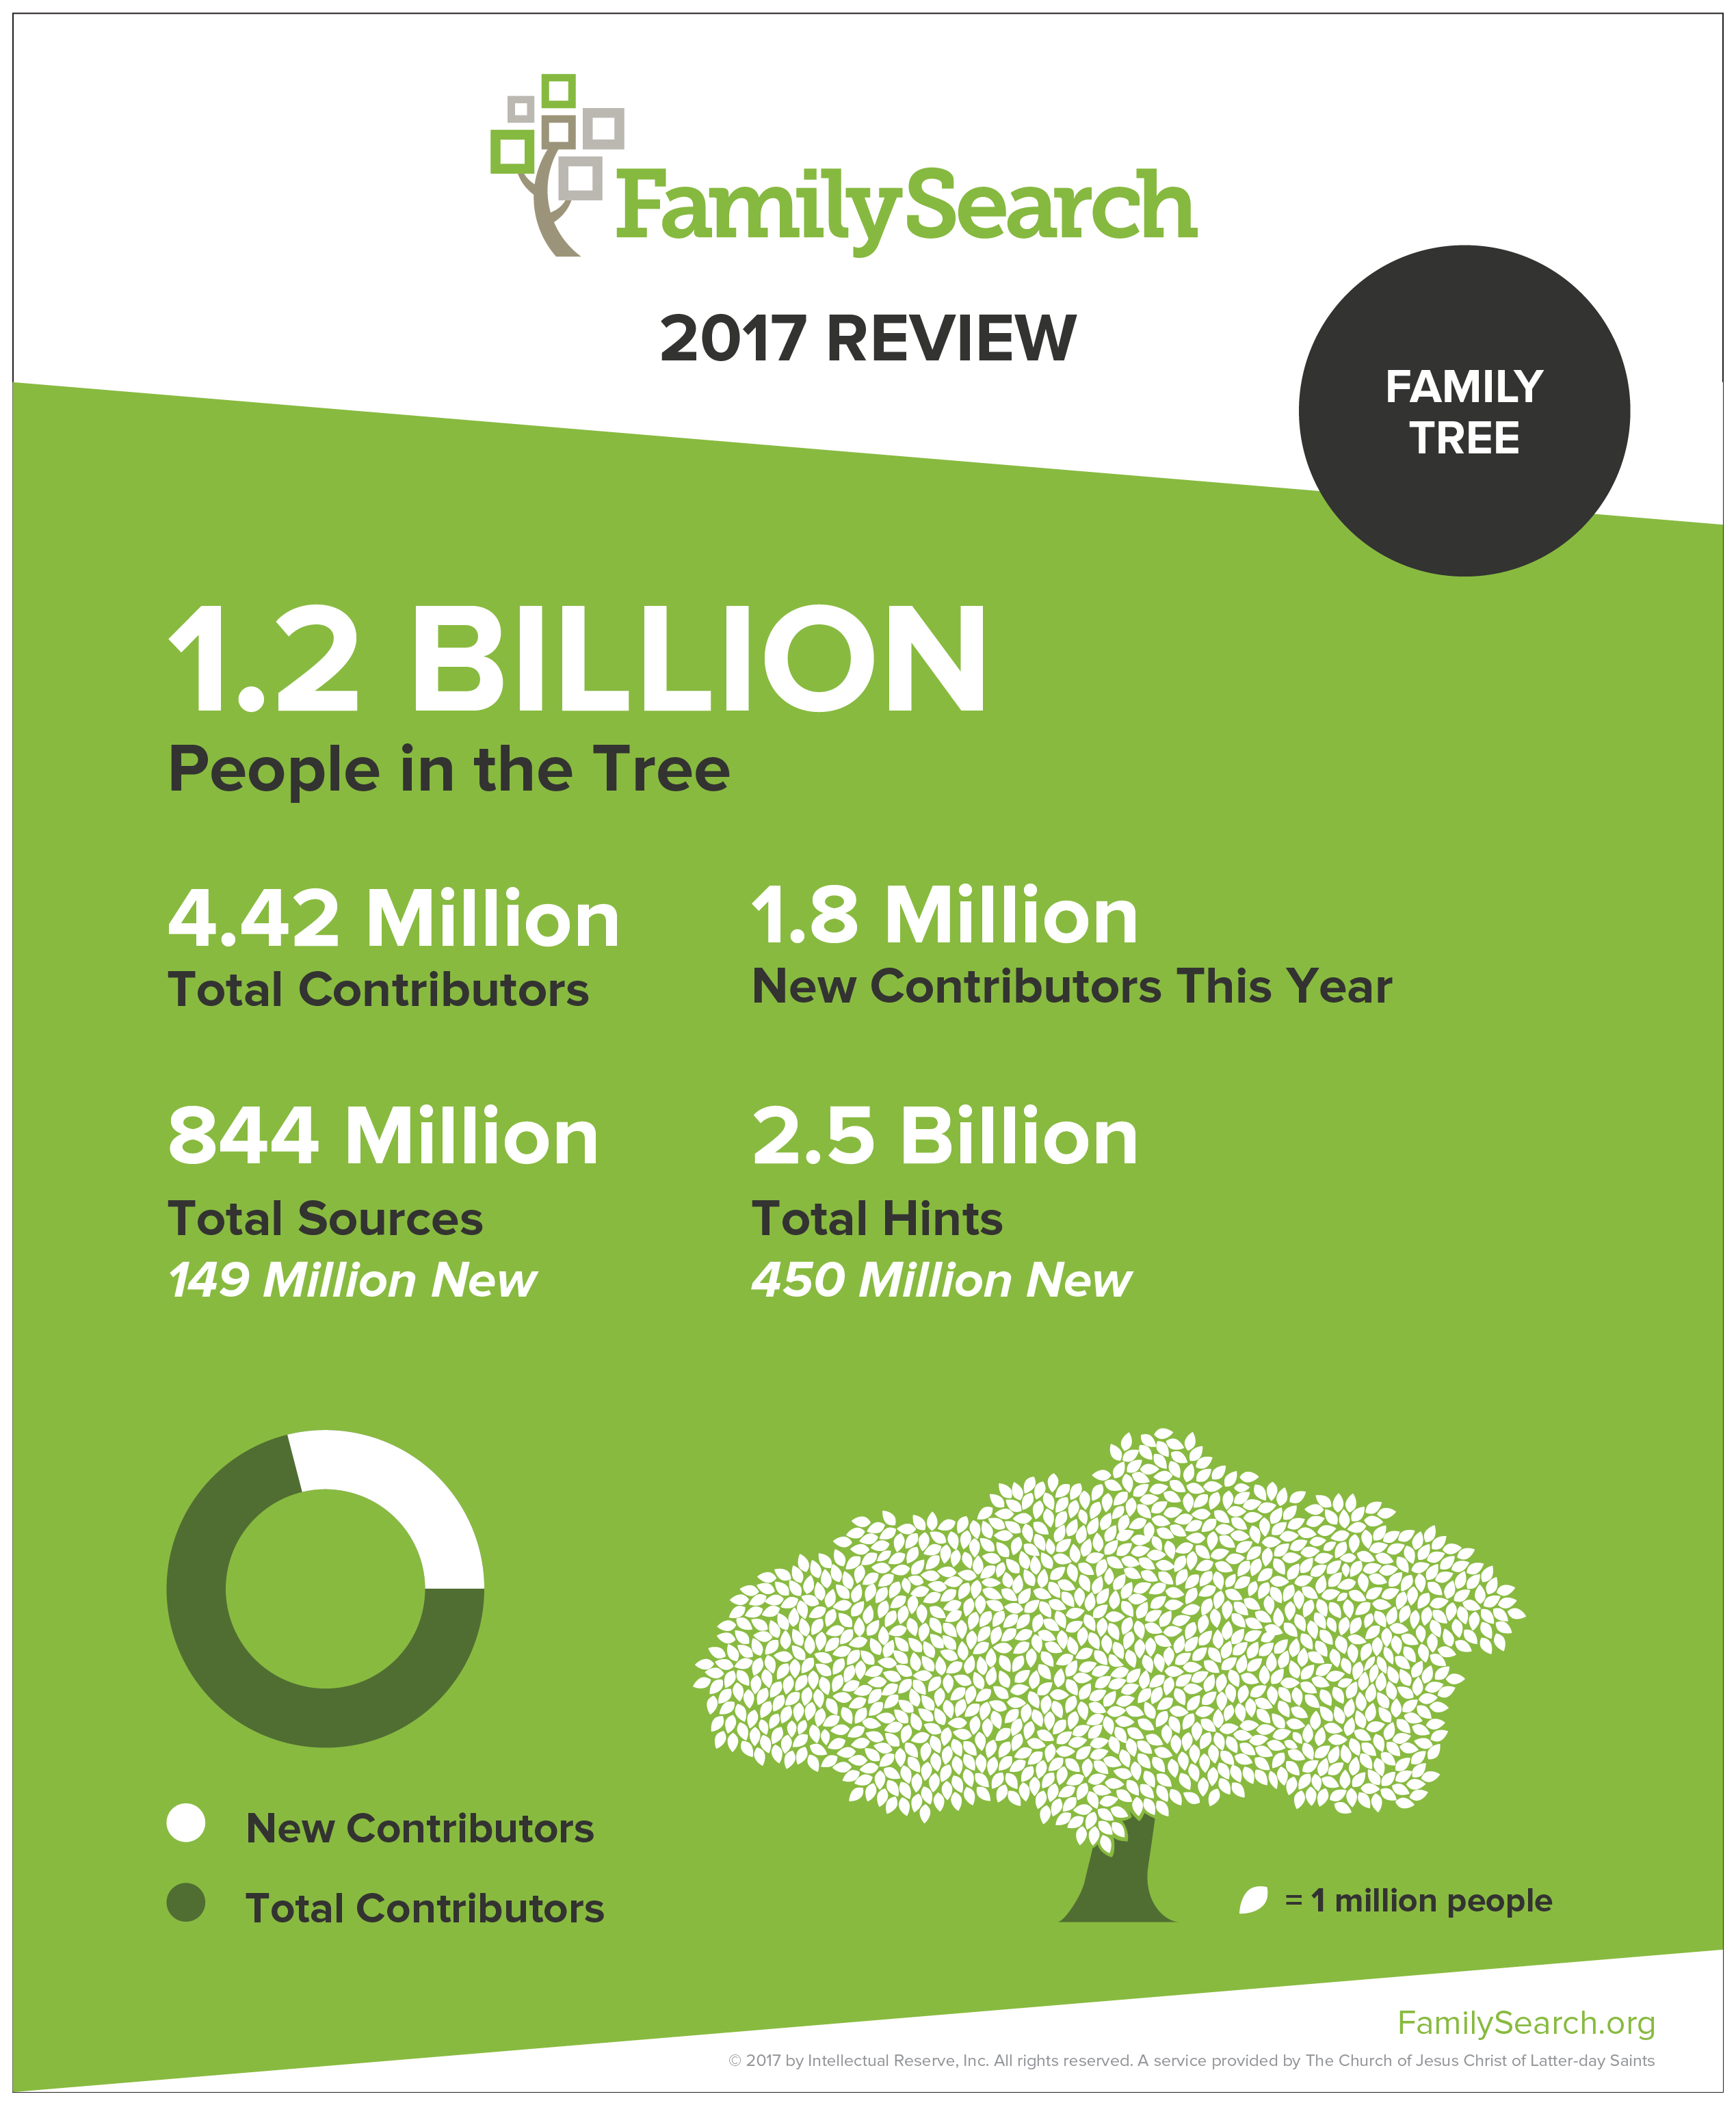 FamilySearch Family Tree has over 1.2 billion free searchable names.